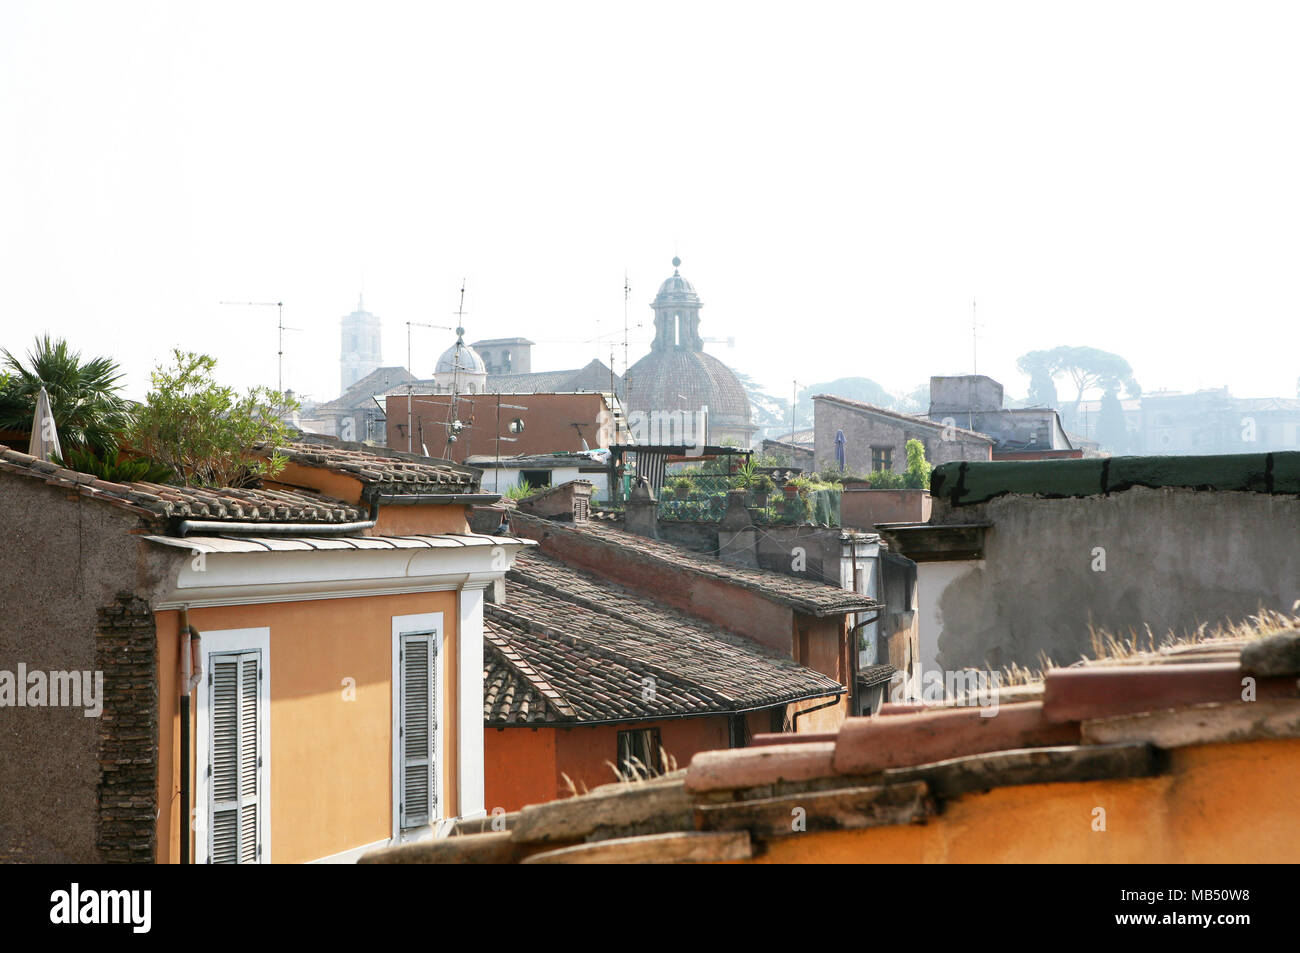 Landscape on the roofs and domes with Capitol Hill Tower, Rome, Italy - Stock Image